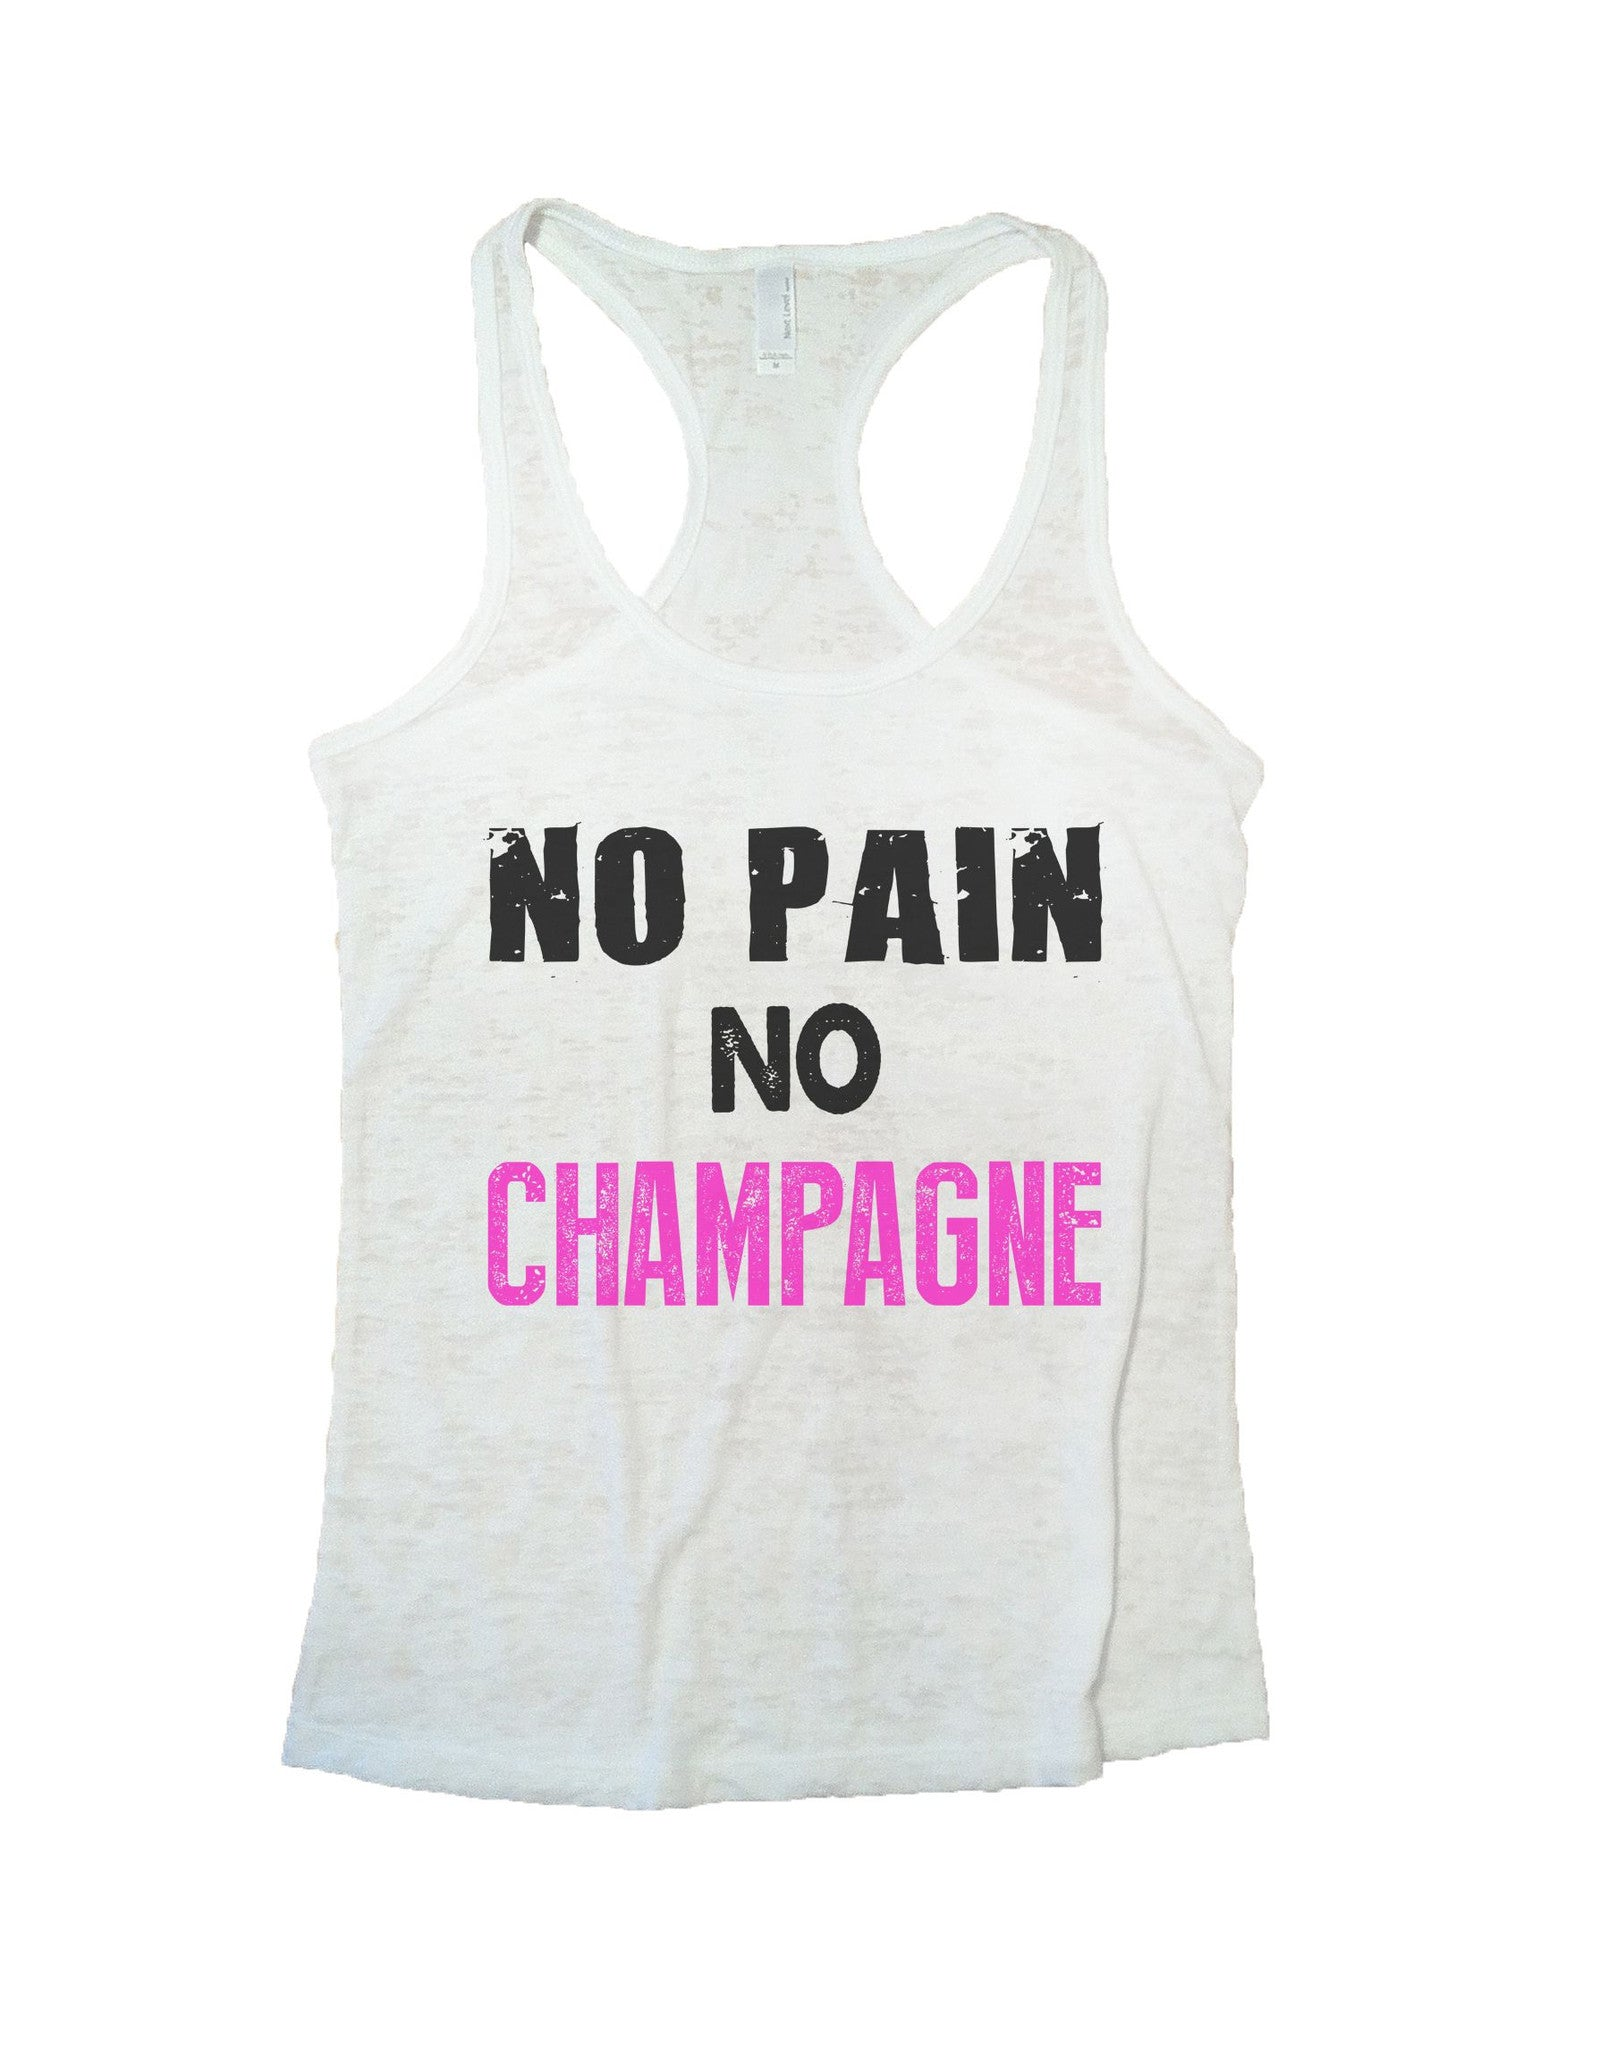 No Pain No Champagne Burnout Tank Top By BurnoutTankTops.com - 683 - Funny Shirts Tank Tops Burnouts and Triblends  - 5